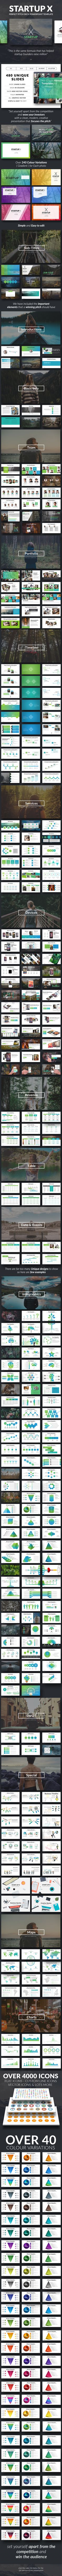 Startup X – Perfect Pitch Deck Powerpoint Template. Download here: http://graphicriver.net/item/startup-x-perfect-pitch-deck-powerpoint-template/15639379?ref=ksioks